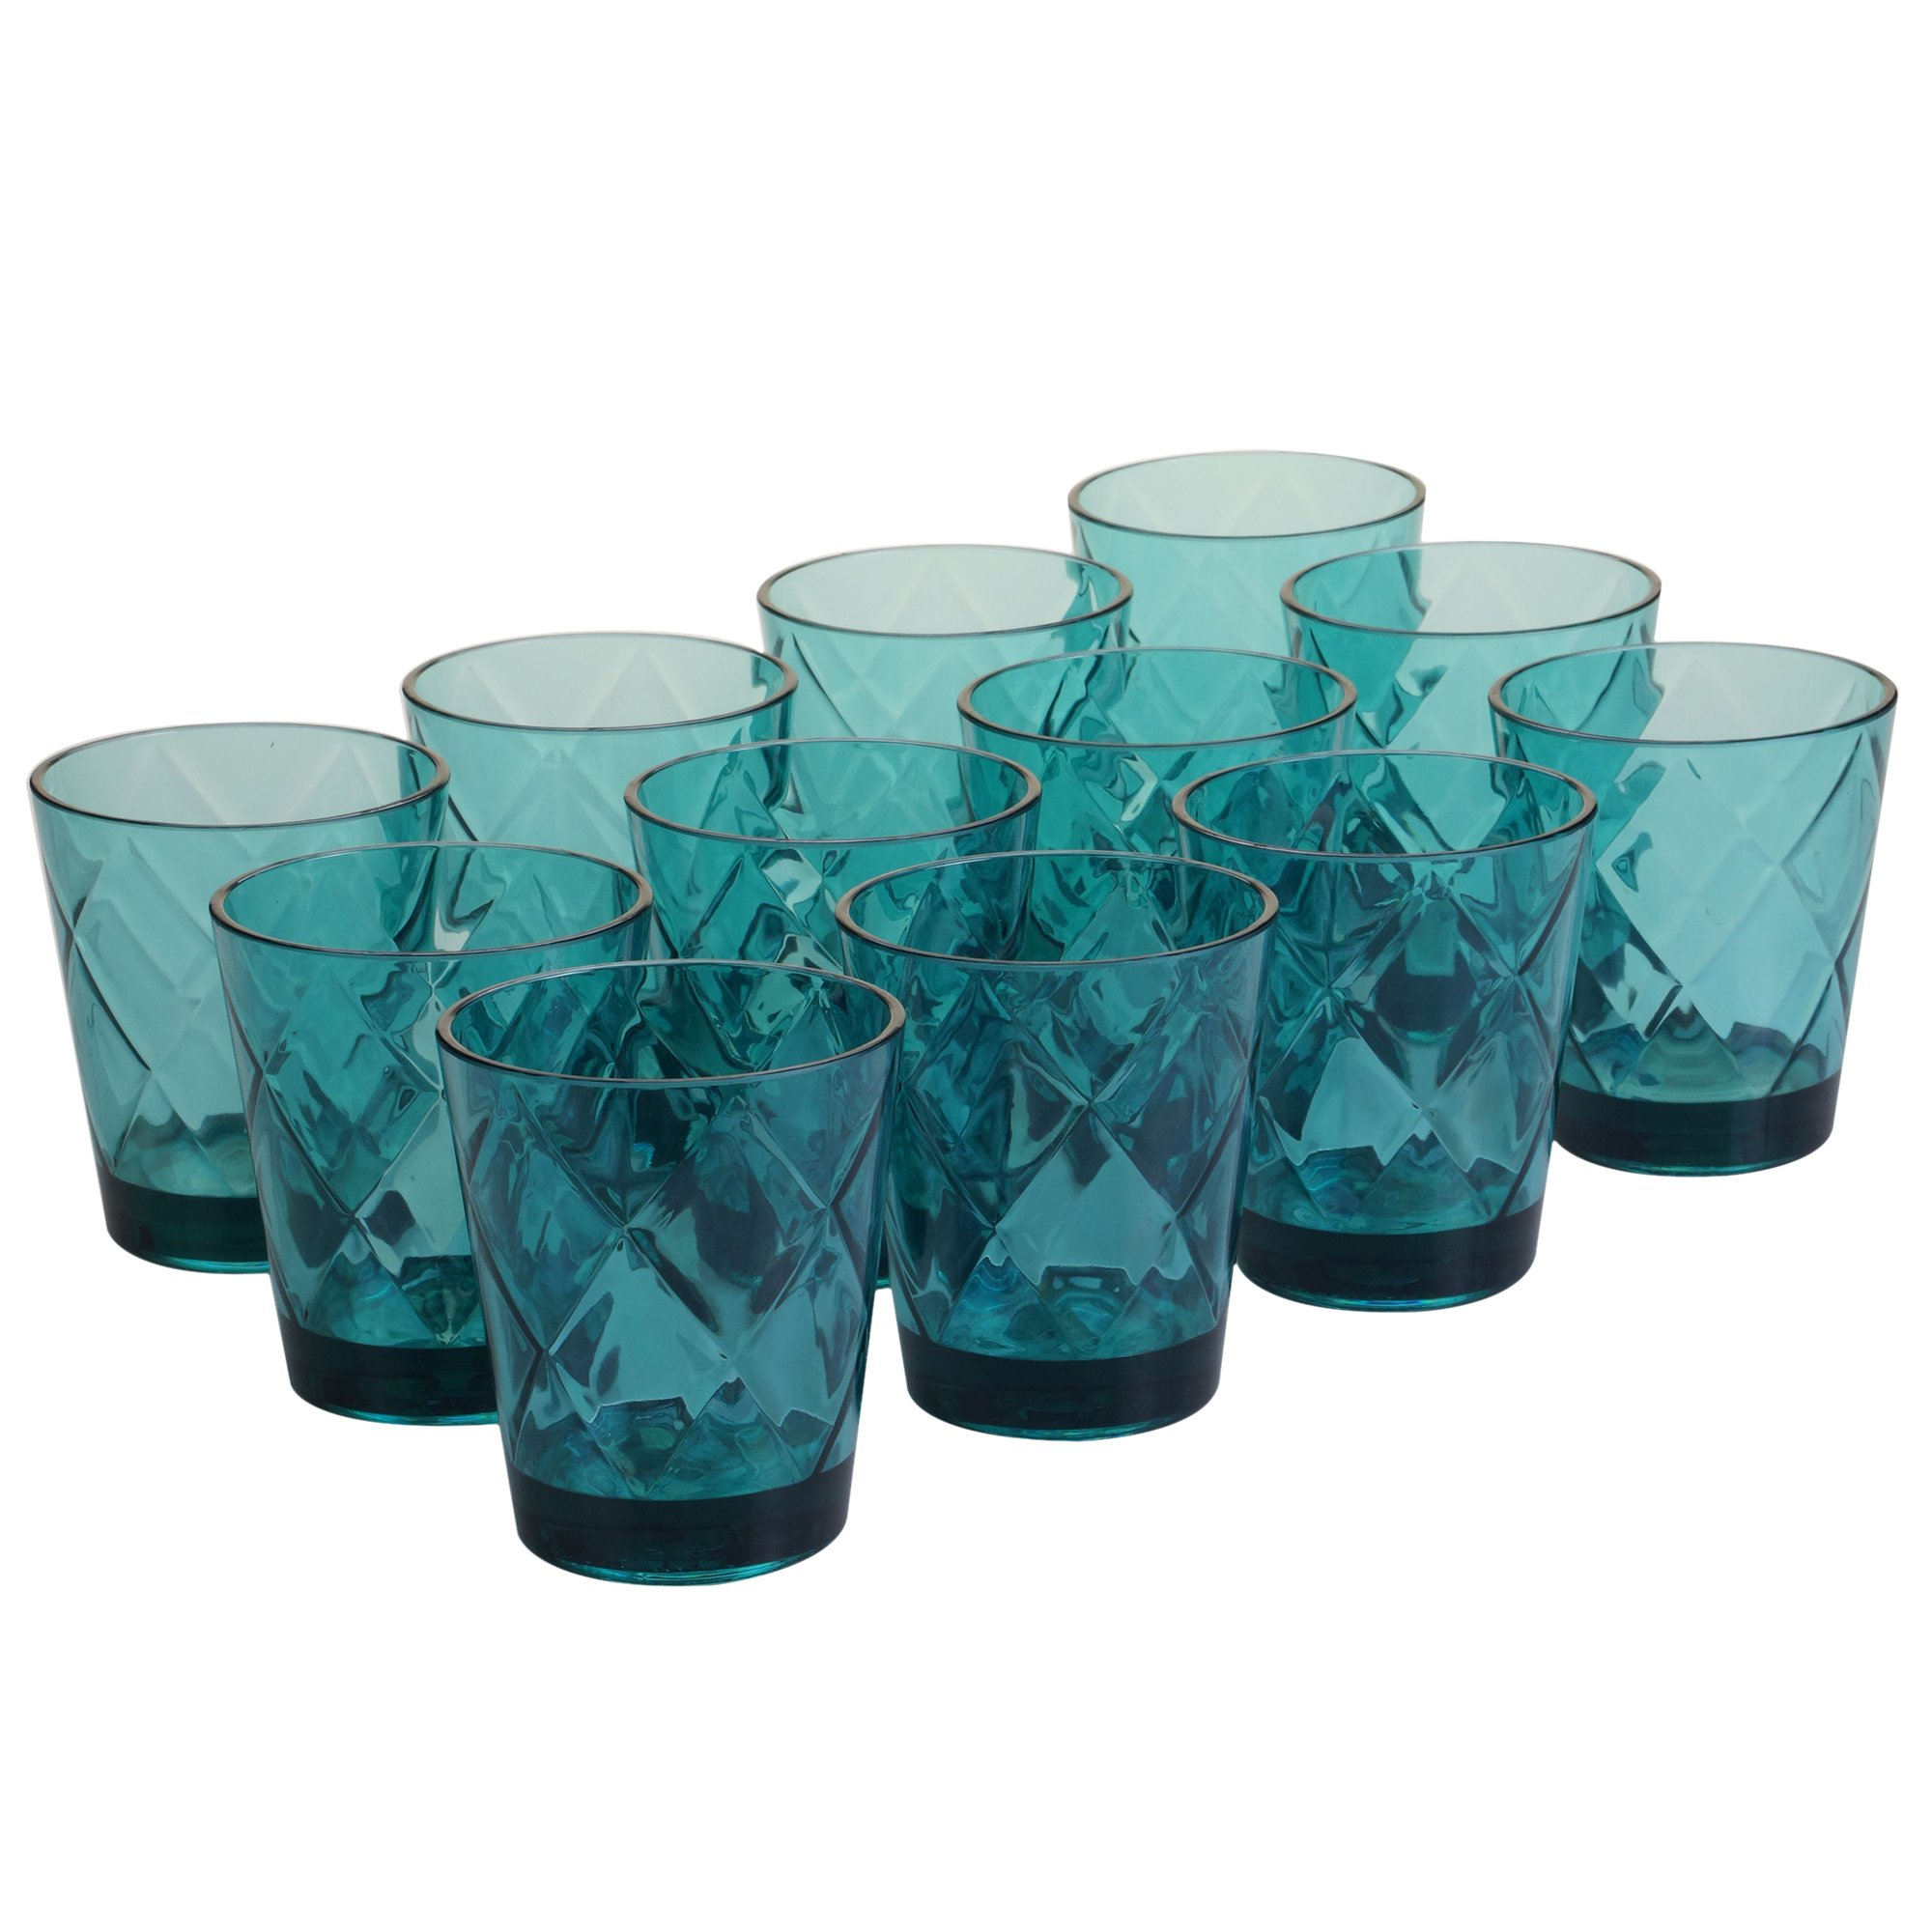 Certified International Teal 15 oz Acrylic Double Old Fashion Drinkware (Set of 12), Teal